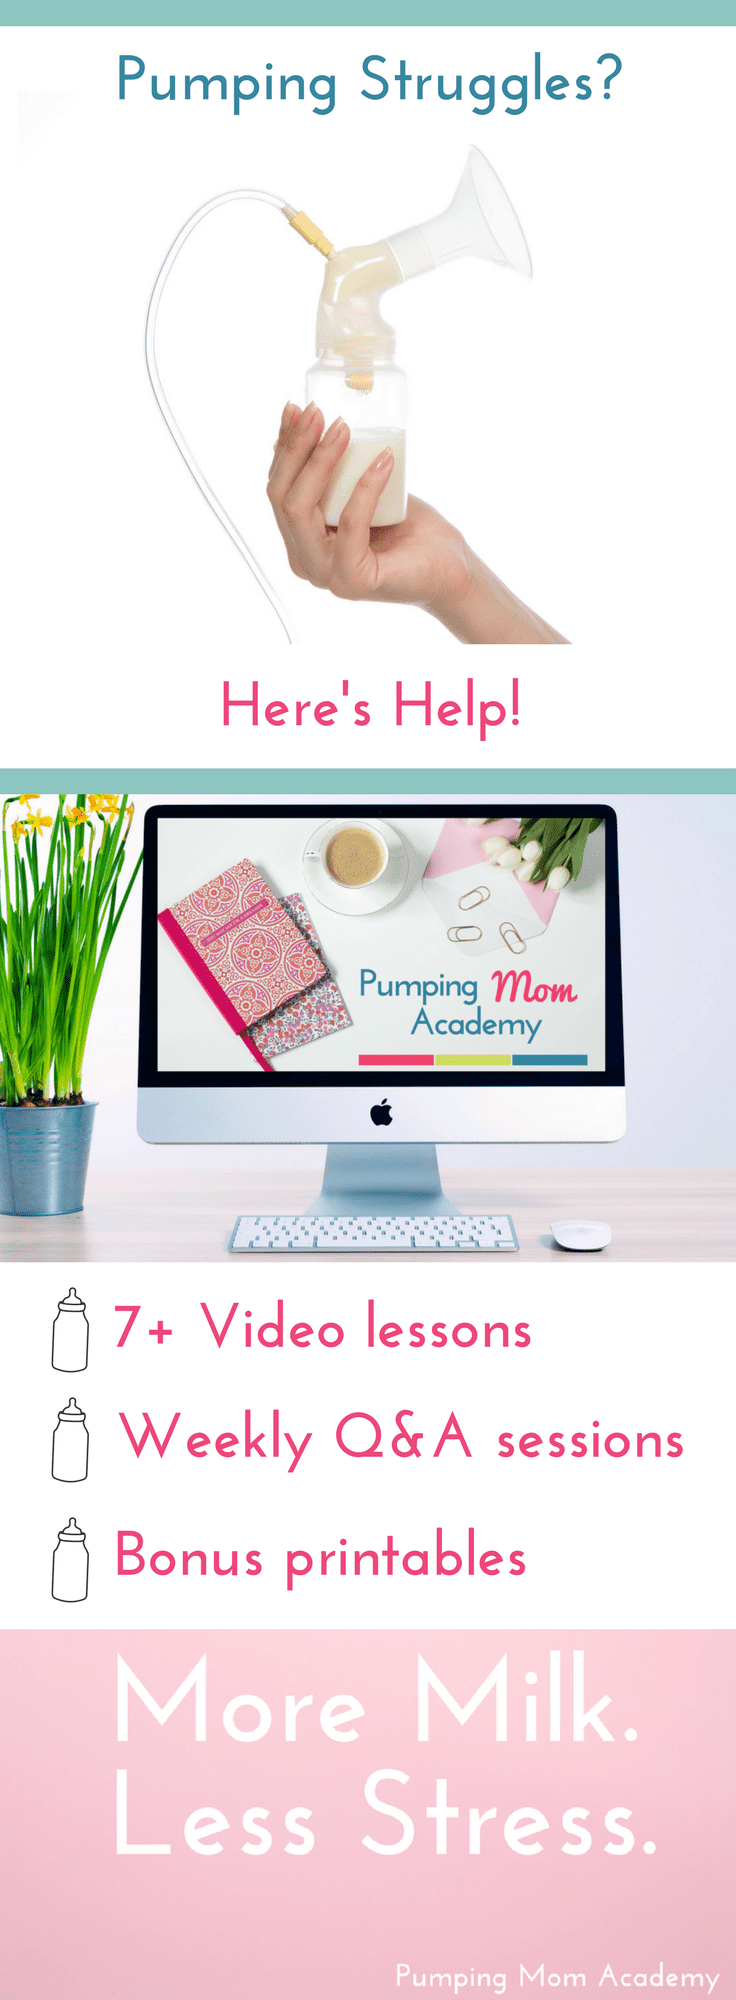 Pumping Mom Academy: More Milk, Less Stress - Find Your Mom